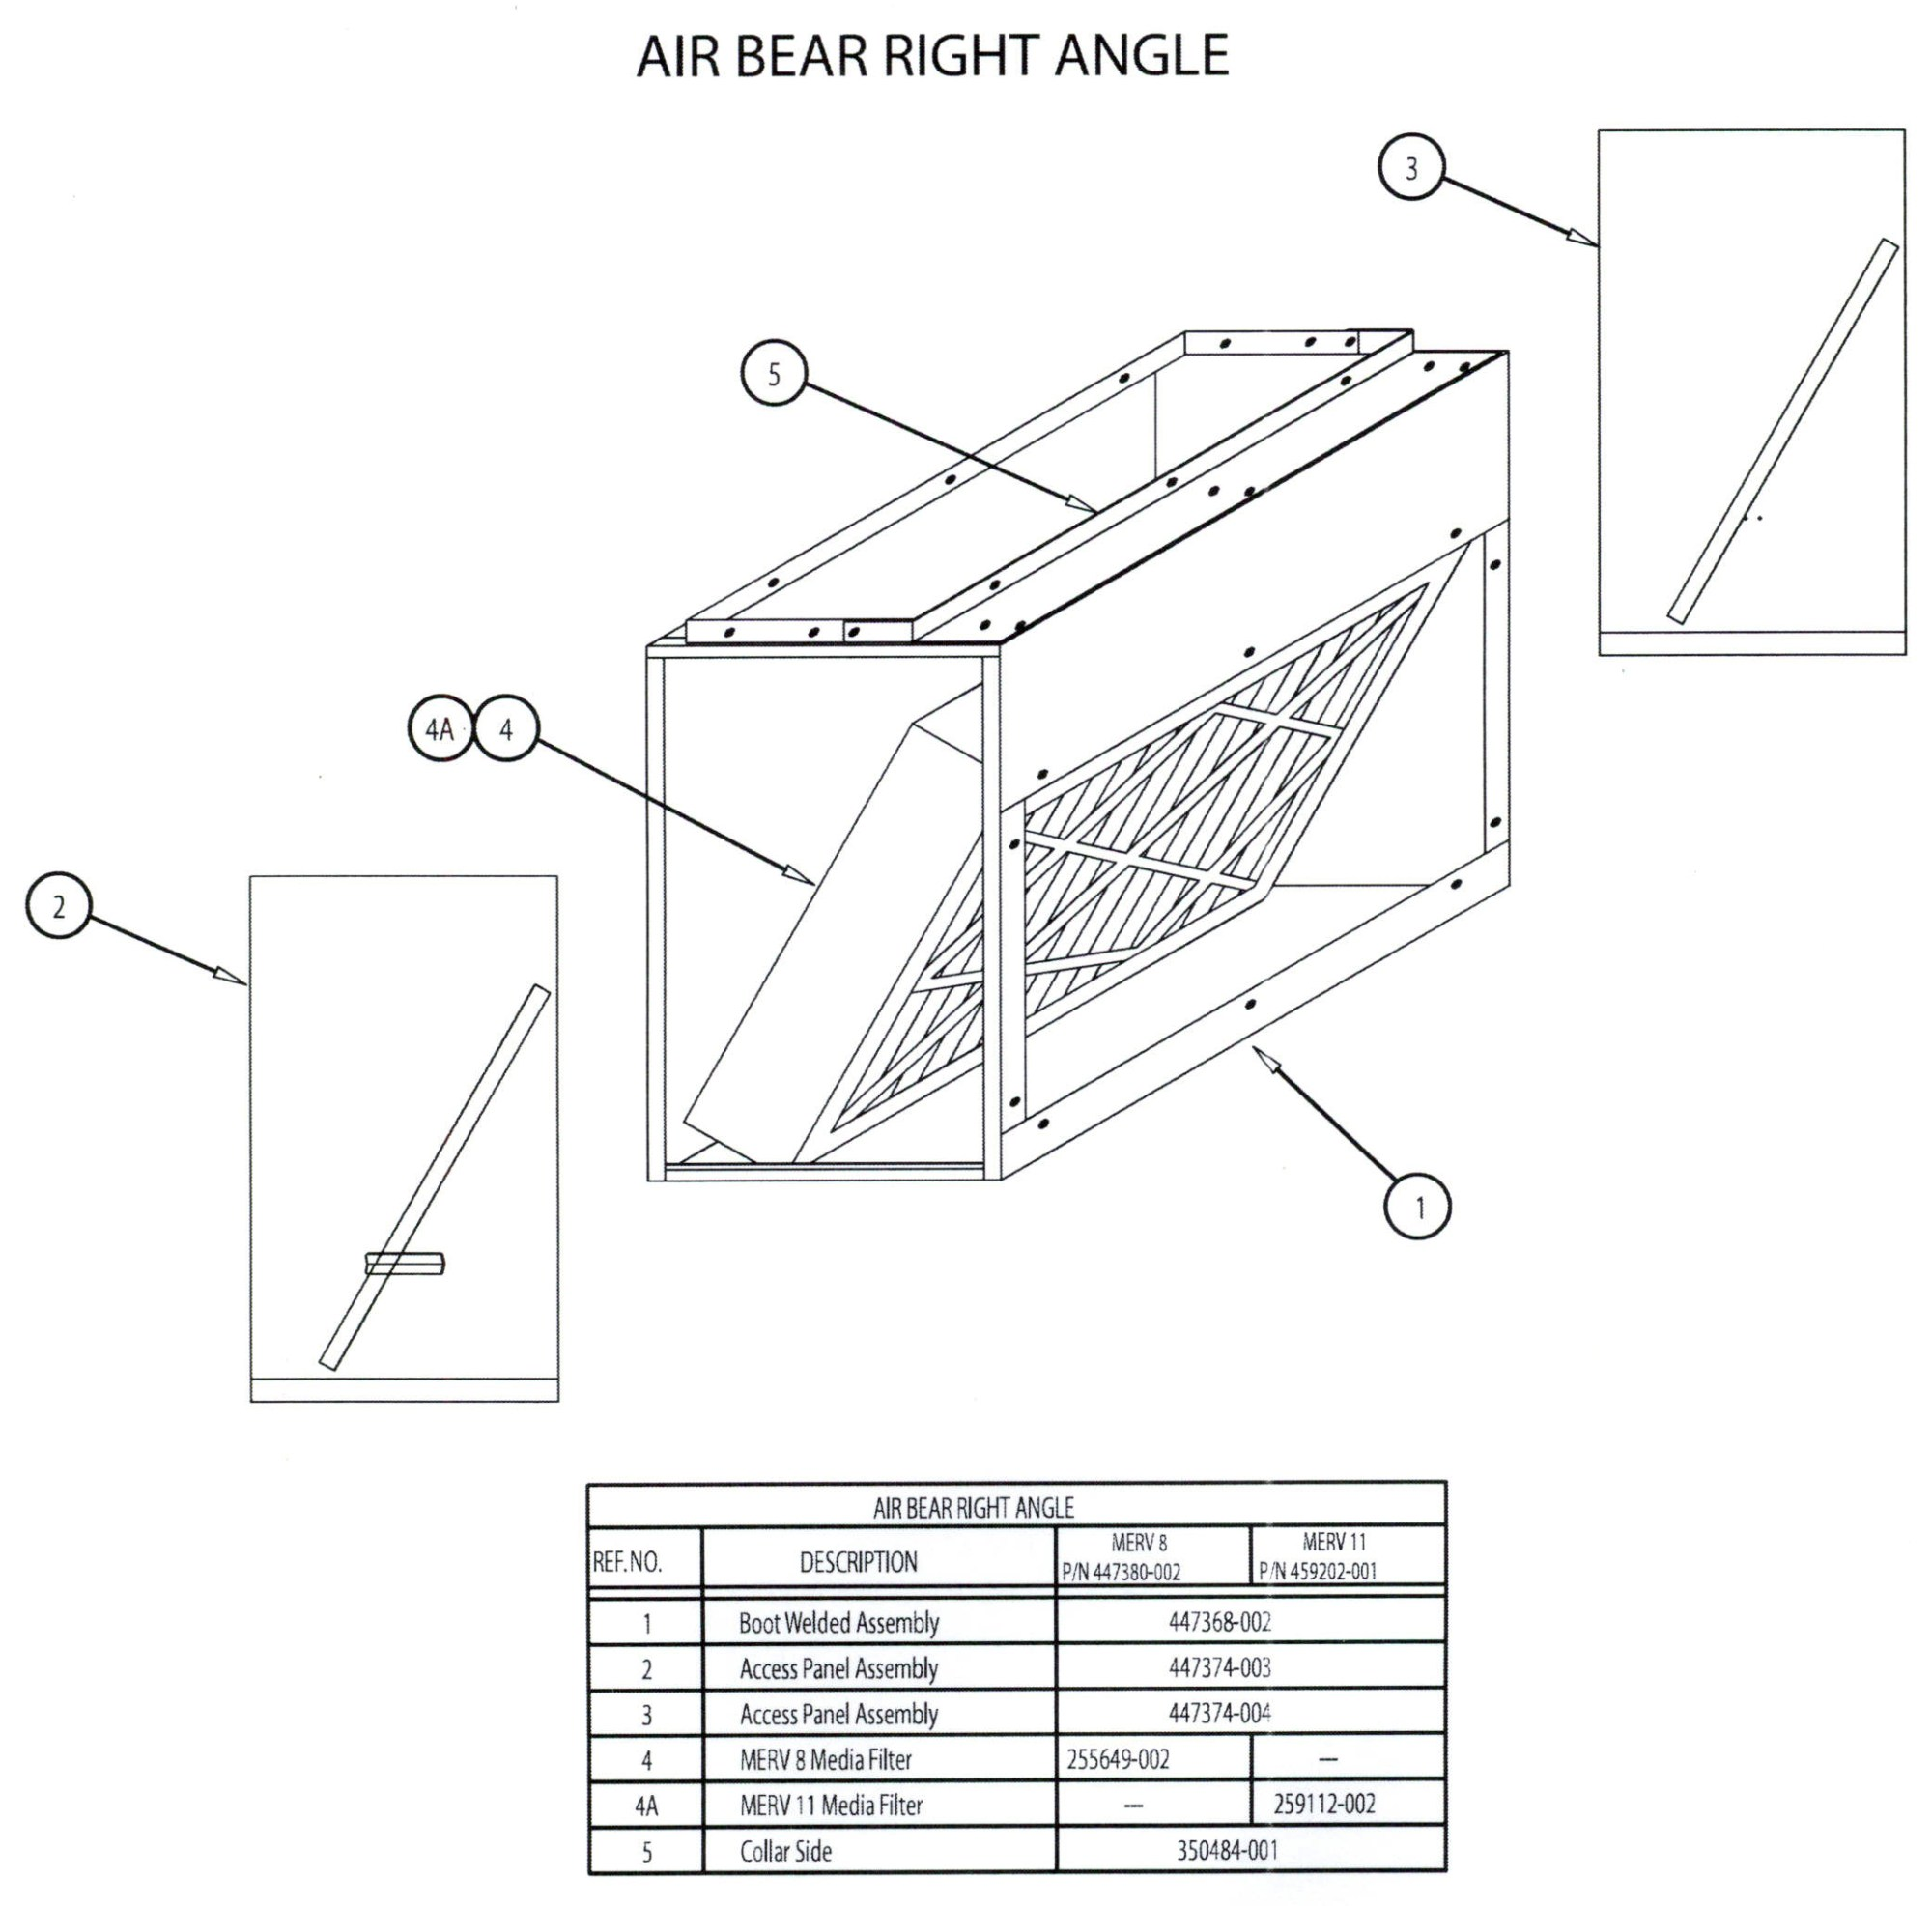 hight resolution of with a 5 media cleaner in an angle filter rack you can achieve the necessary surface area 1 filters in an attached filter rack don t get it done